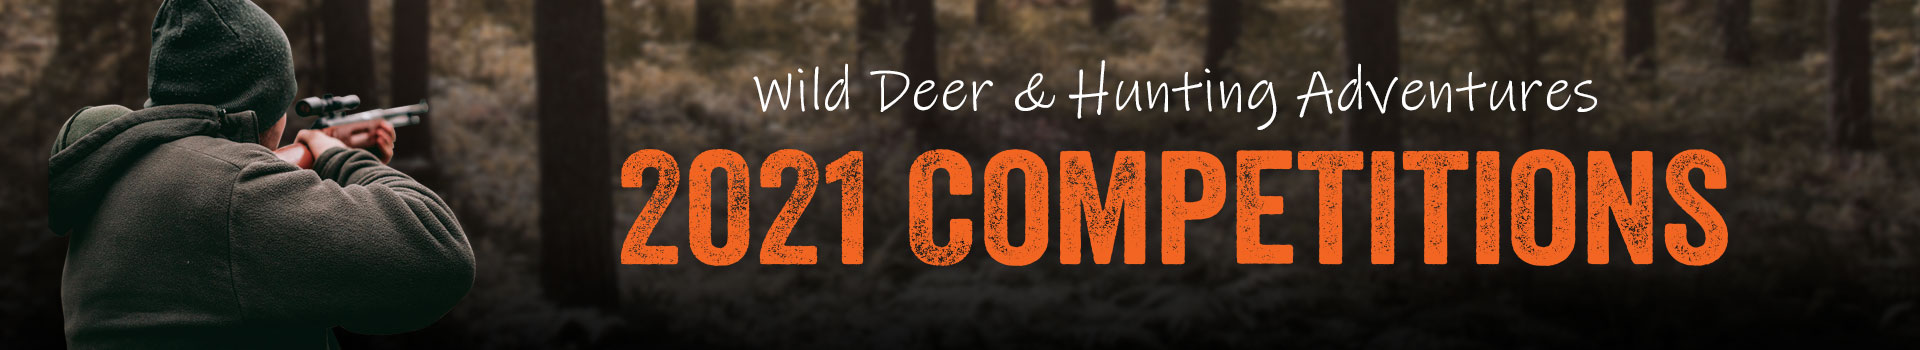 Wild Deer 2021 Competitons